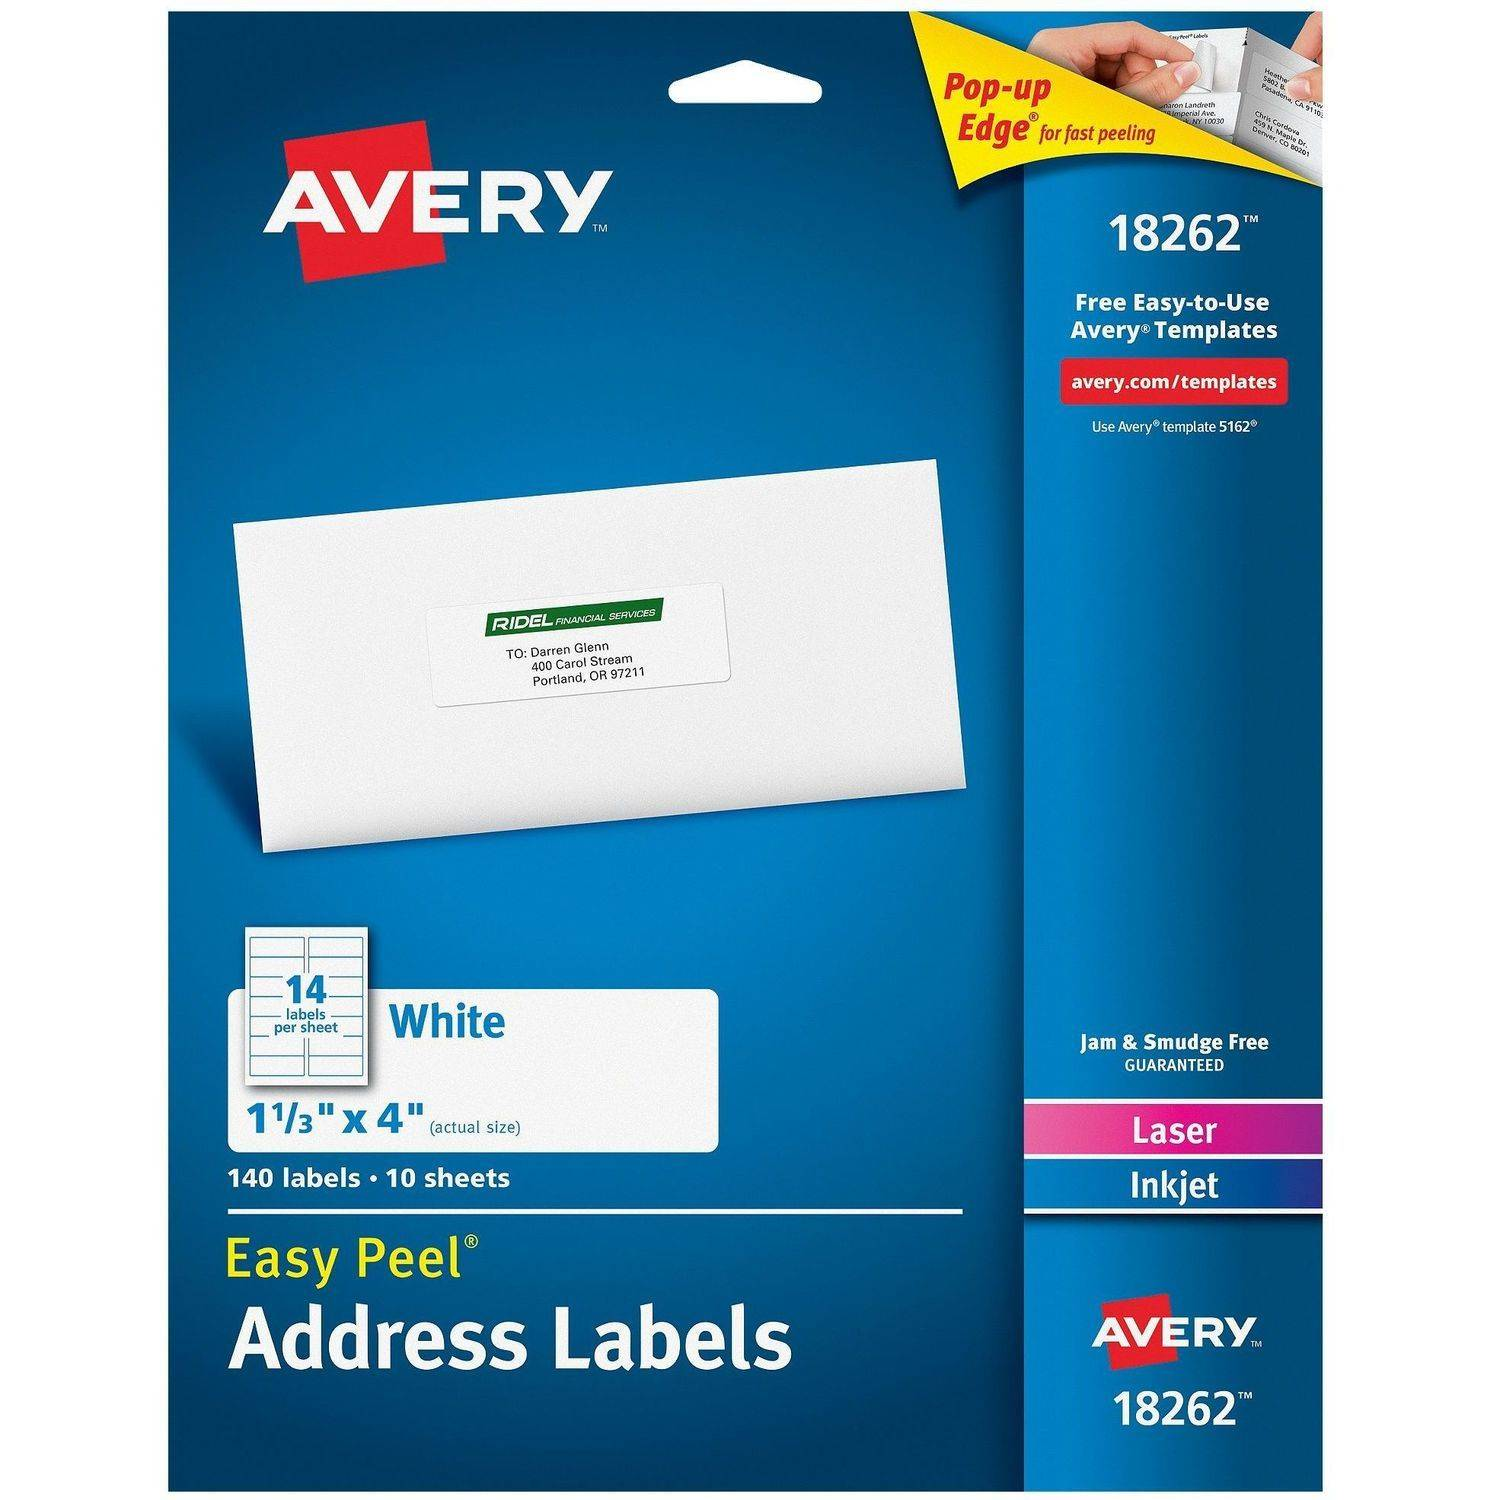 Avery easy peel white address labels 18262 1 13 x 4 laserinkjet avery easy peel white address labels 18262 1 13 x 4 laserinkjet 140pk reheart Choice Image